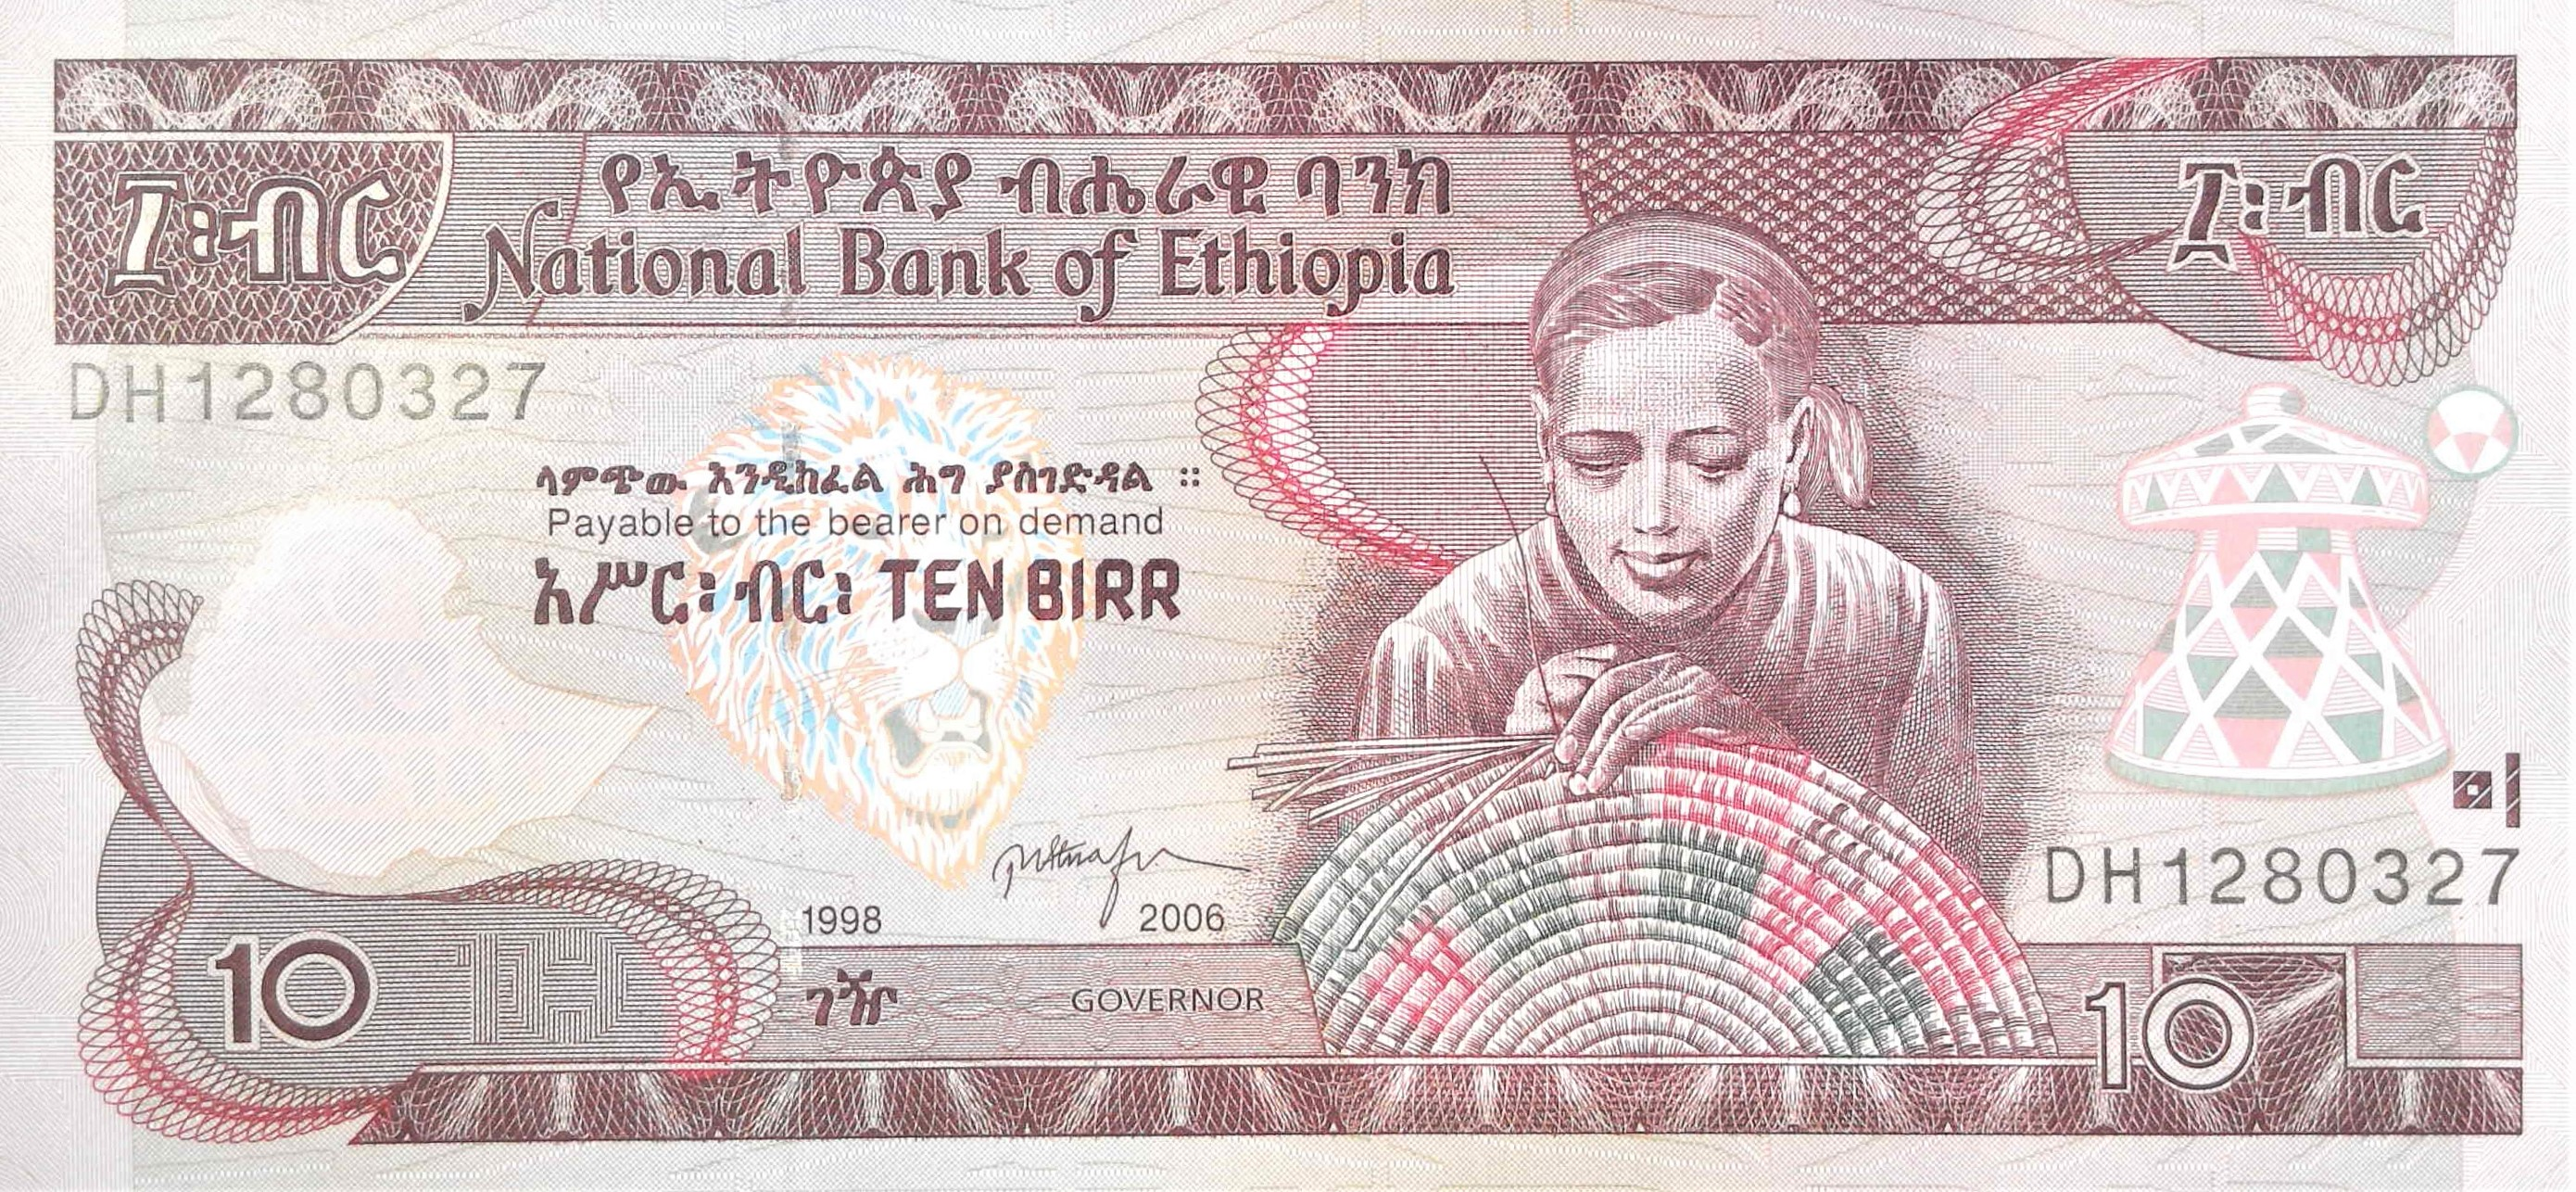 Ethiopia 10 Birr banknote year 2006 front, featuring woman weaving